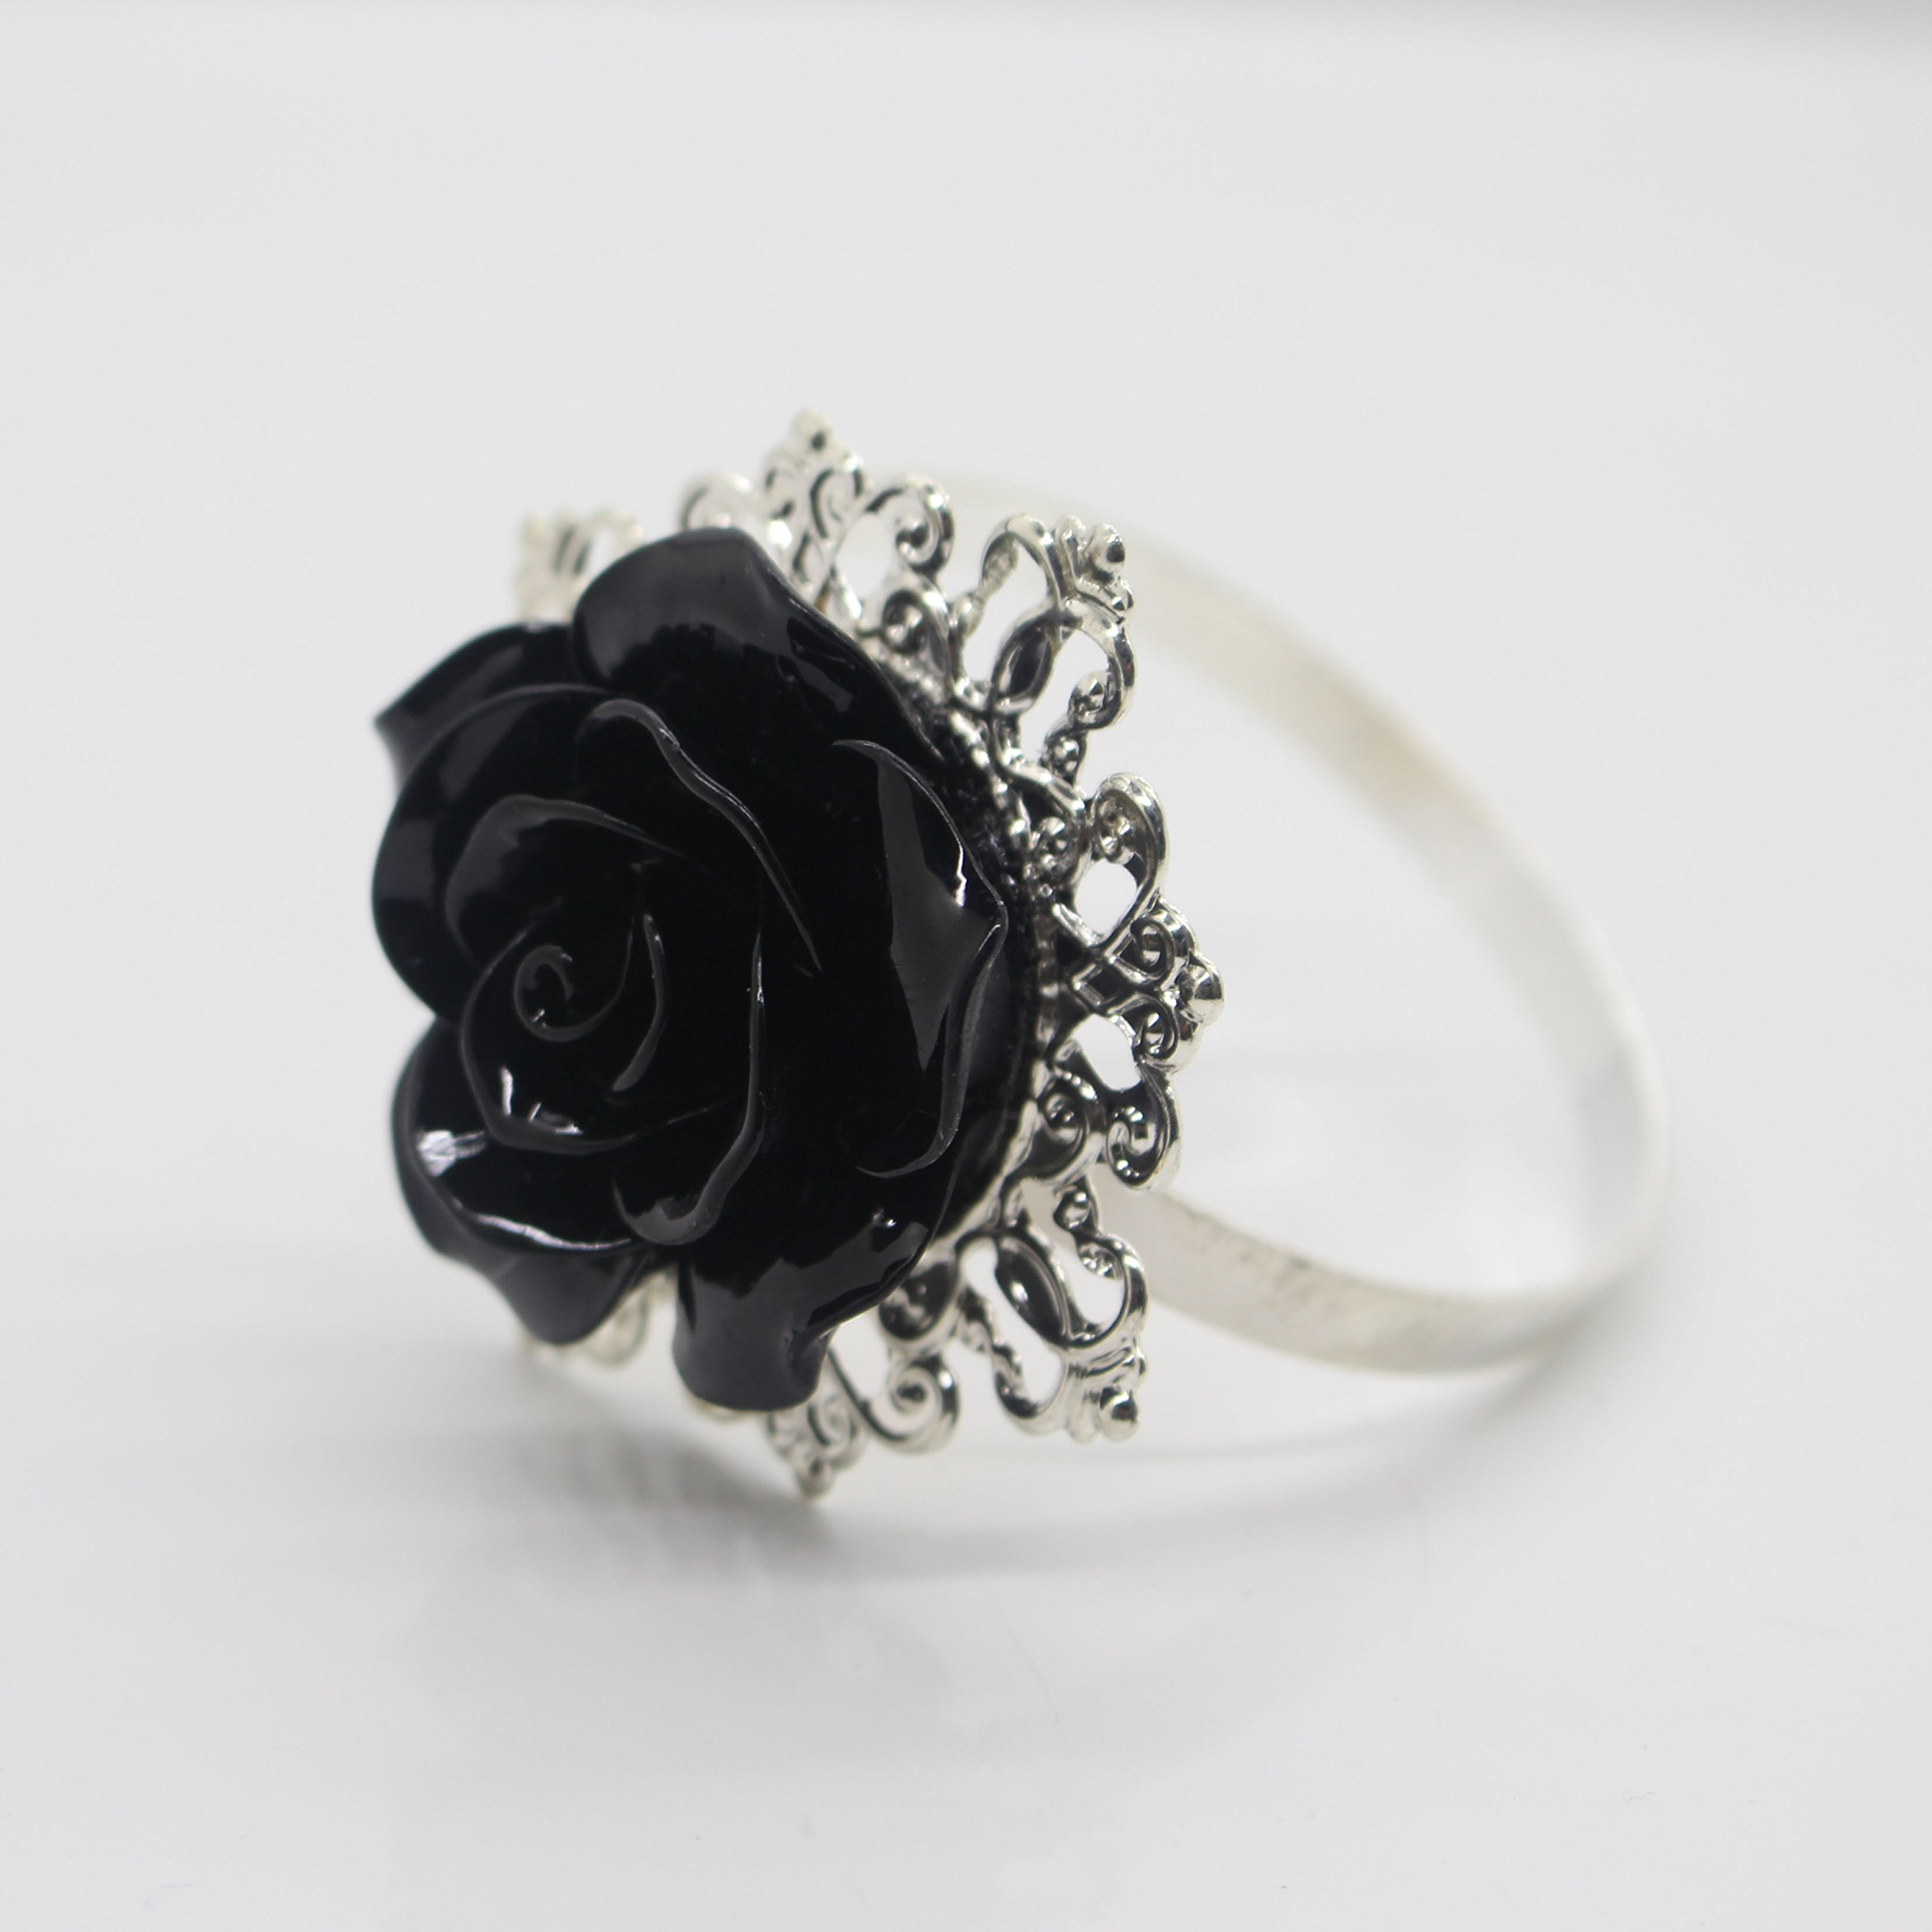 AngHui ShiPin 10pcs Black Rose Decorative Silver Napkin Ring Serviette Holder for Wedding Party Dinner Table Decor Many Color Available for Christmas Table by AngHui